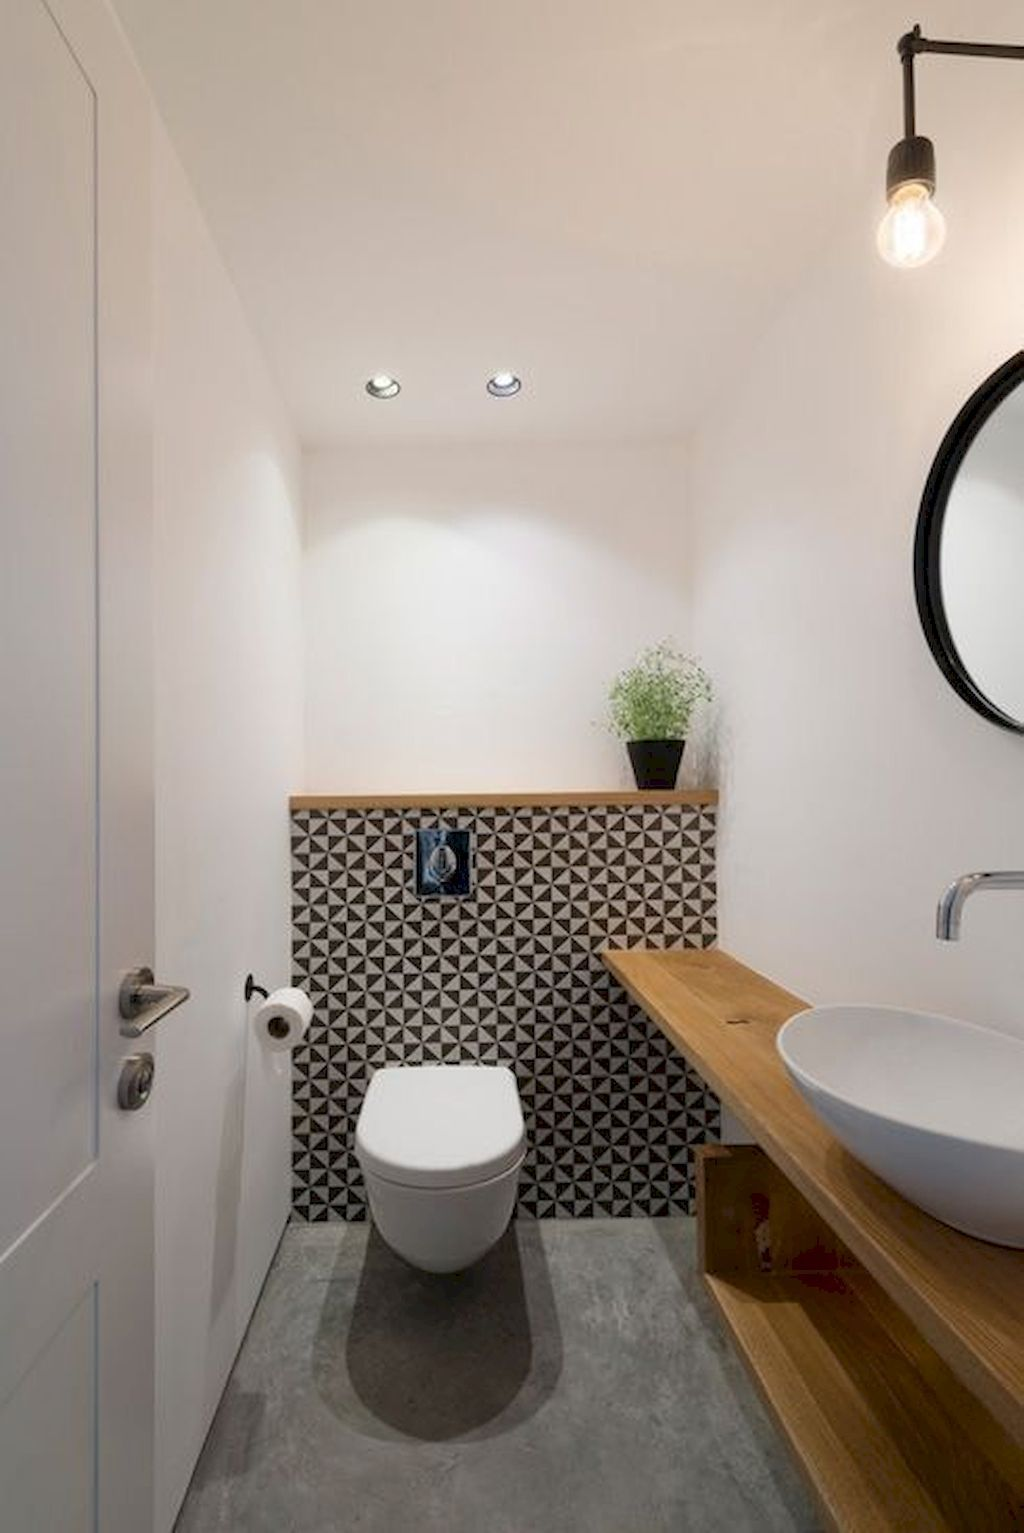 Bathroom Remodel Tips Is Extremely Important For Your Home Whether You Pick The Diy Home Decor F Small Bathroom Inspiration Small Toilet Design Small Bathroom